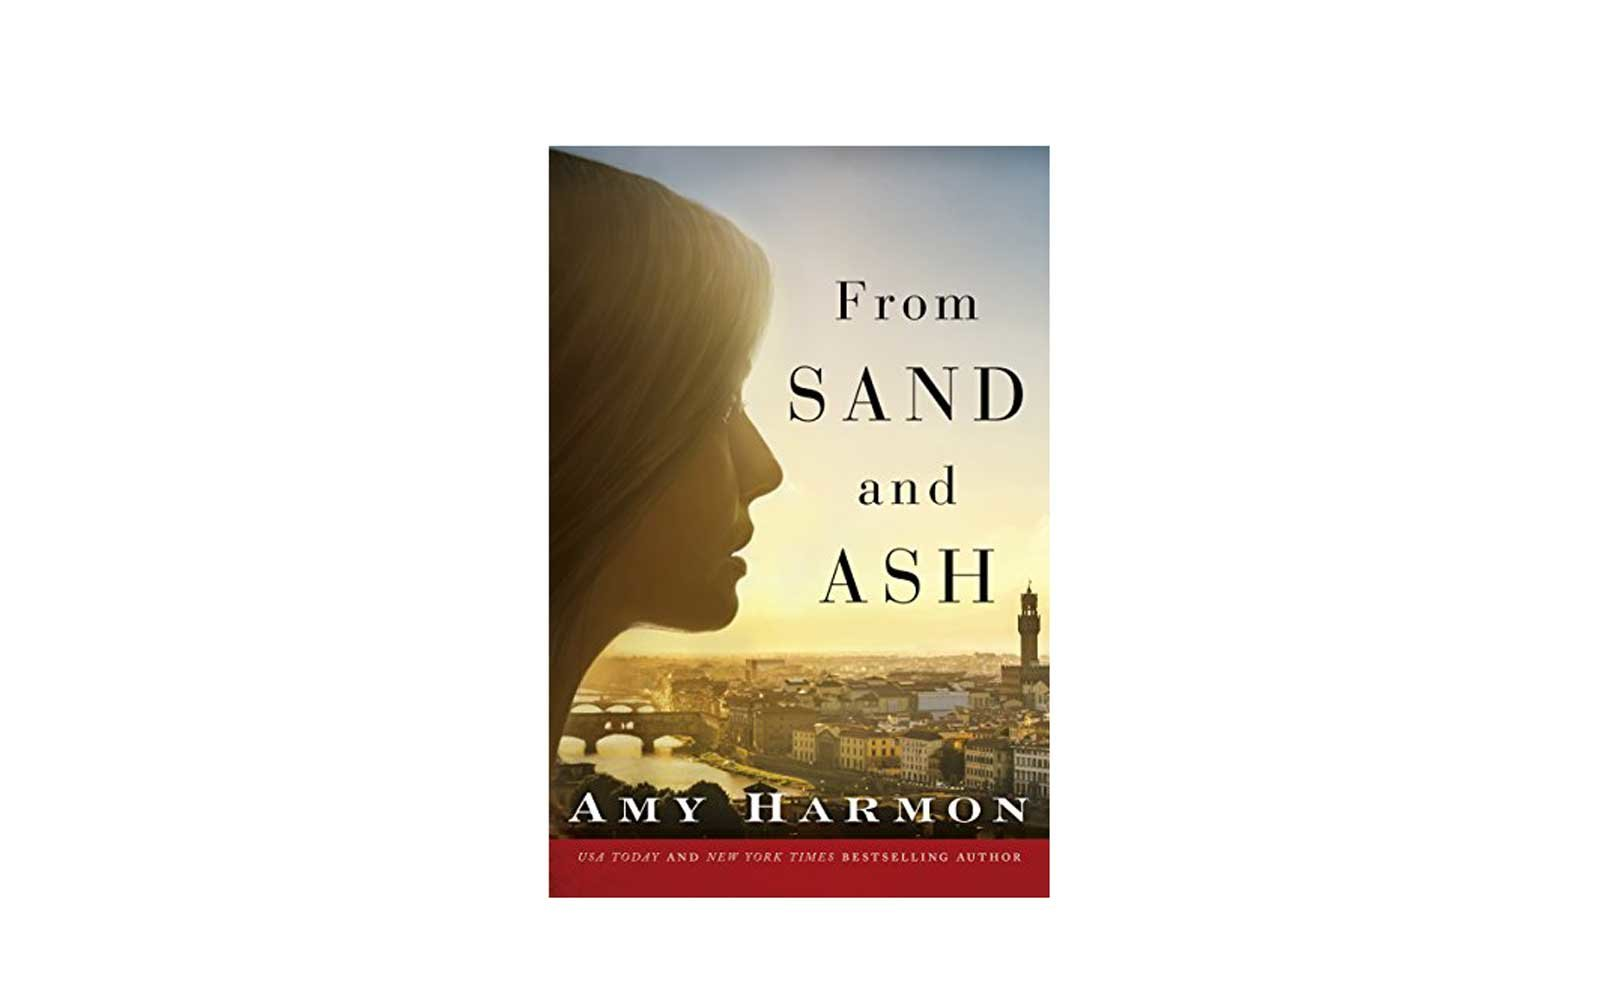 20 most popular Kindle books 2017 From Sand and Ash